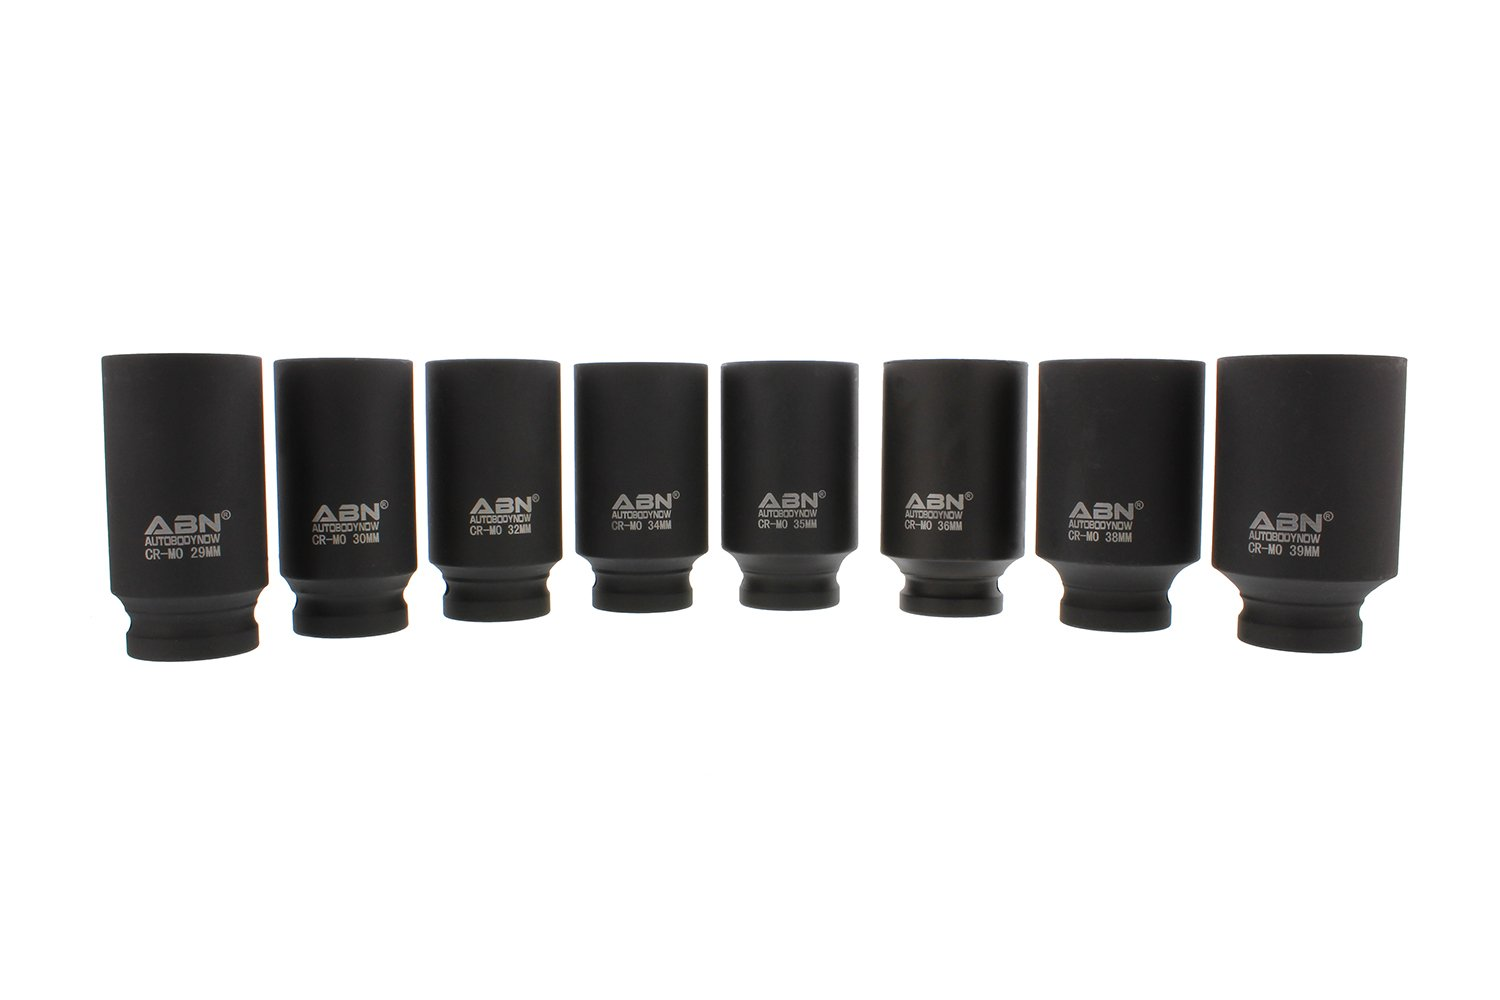 ABN 1//2 Inch Drive 12 Point Spindle Thin Wall Axle Nut Socket 8-Piece Metric Set Repair 12pt Install Removal